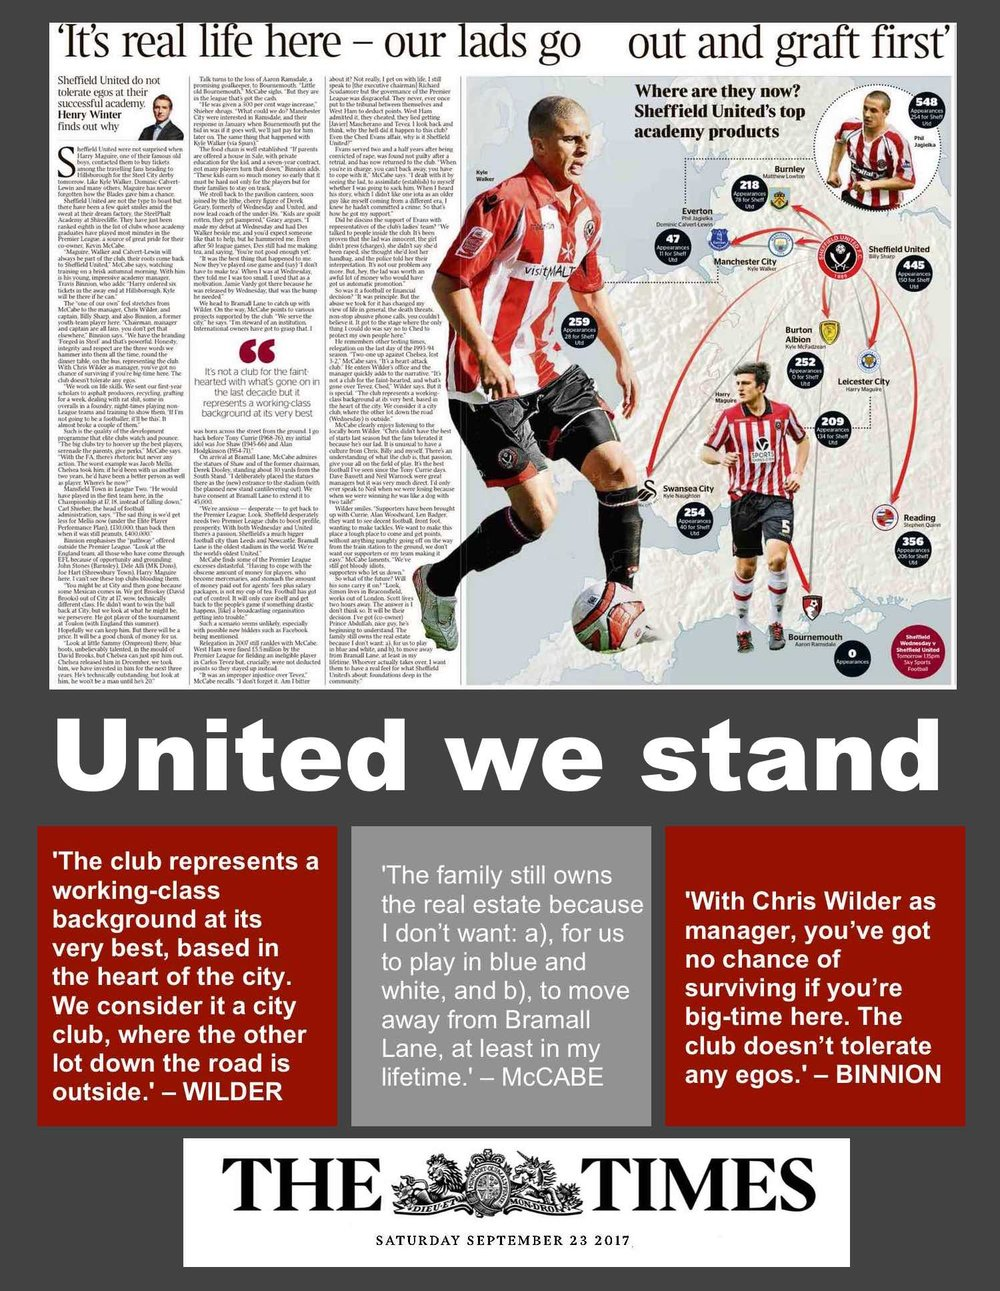 Sheffield United threw open the doors for The Times' Henry Winter